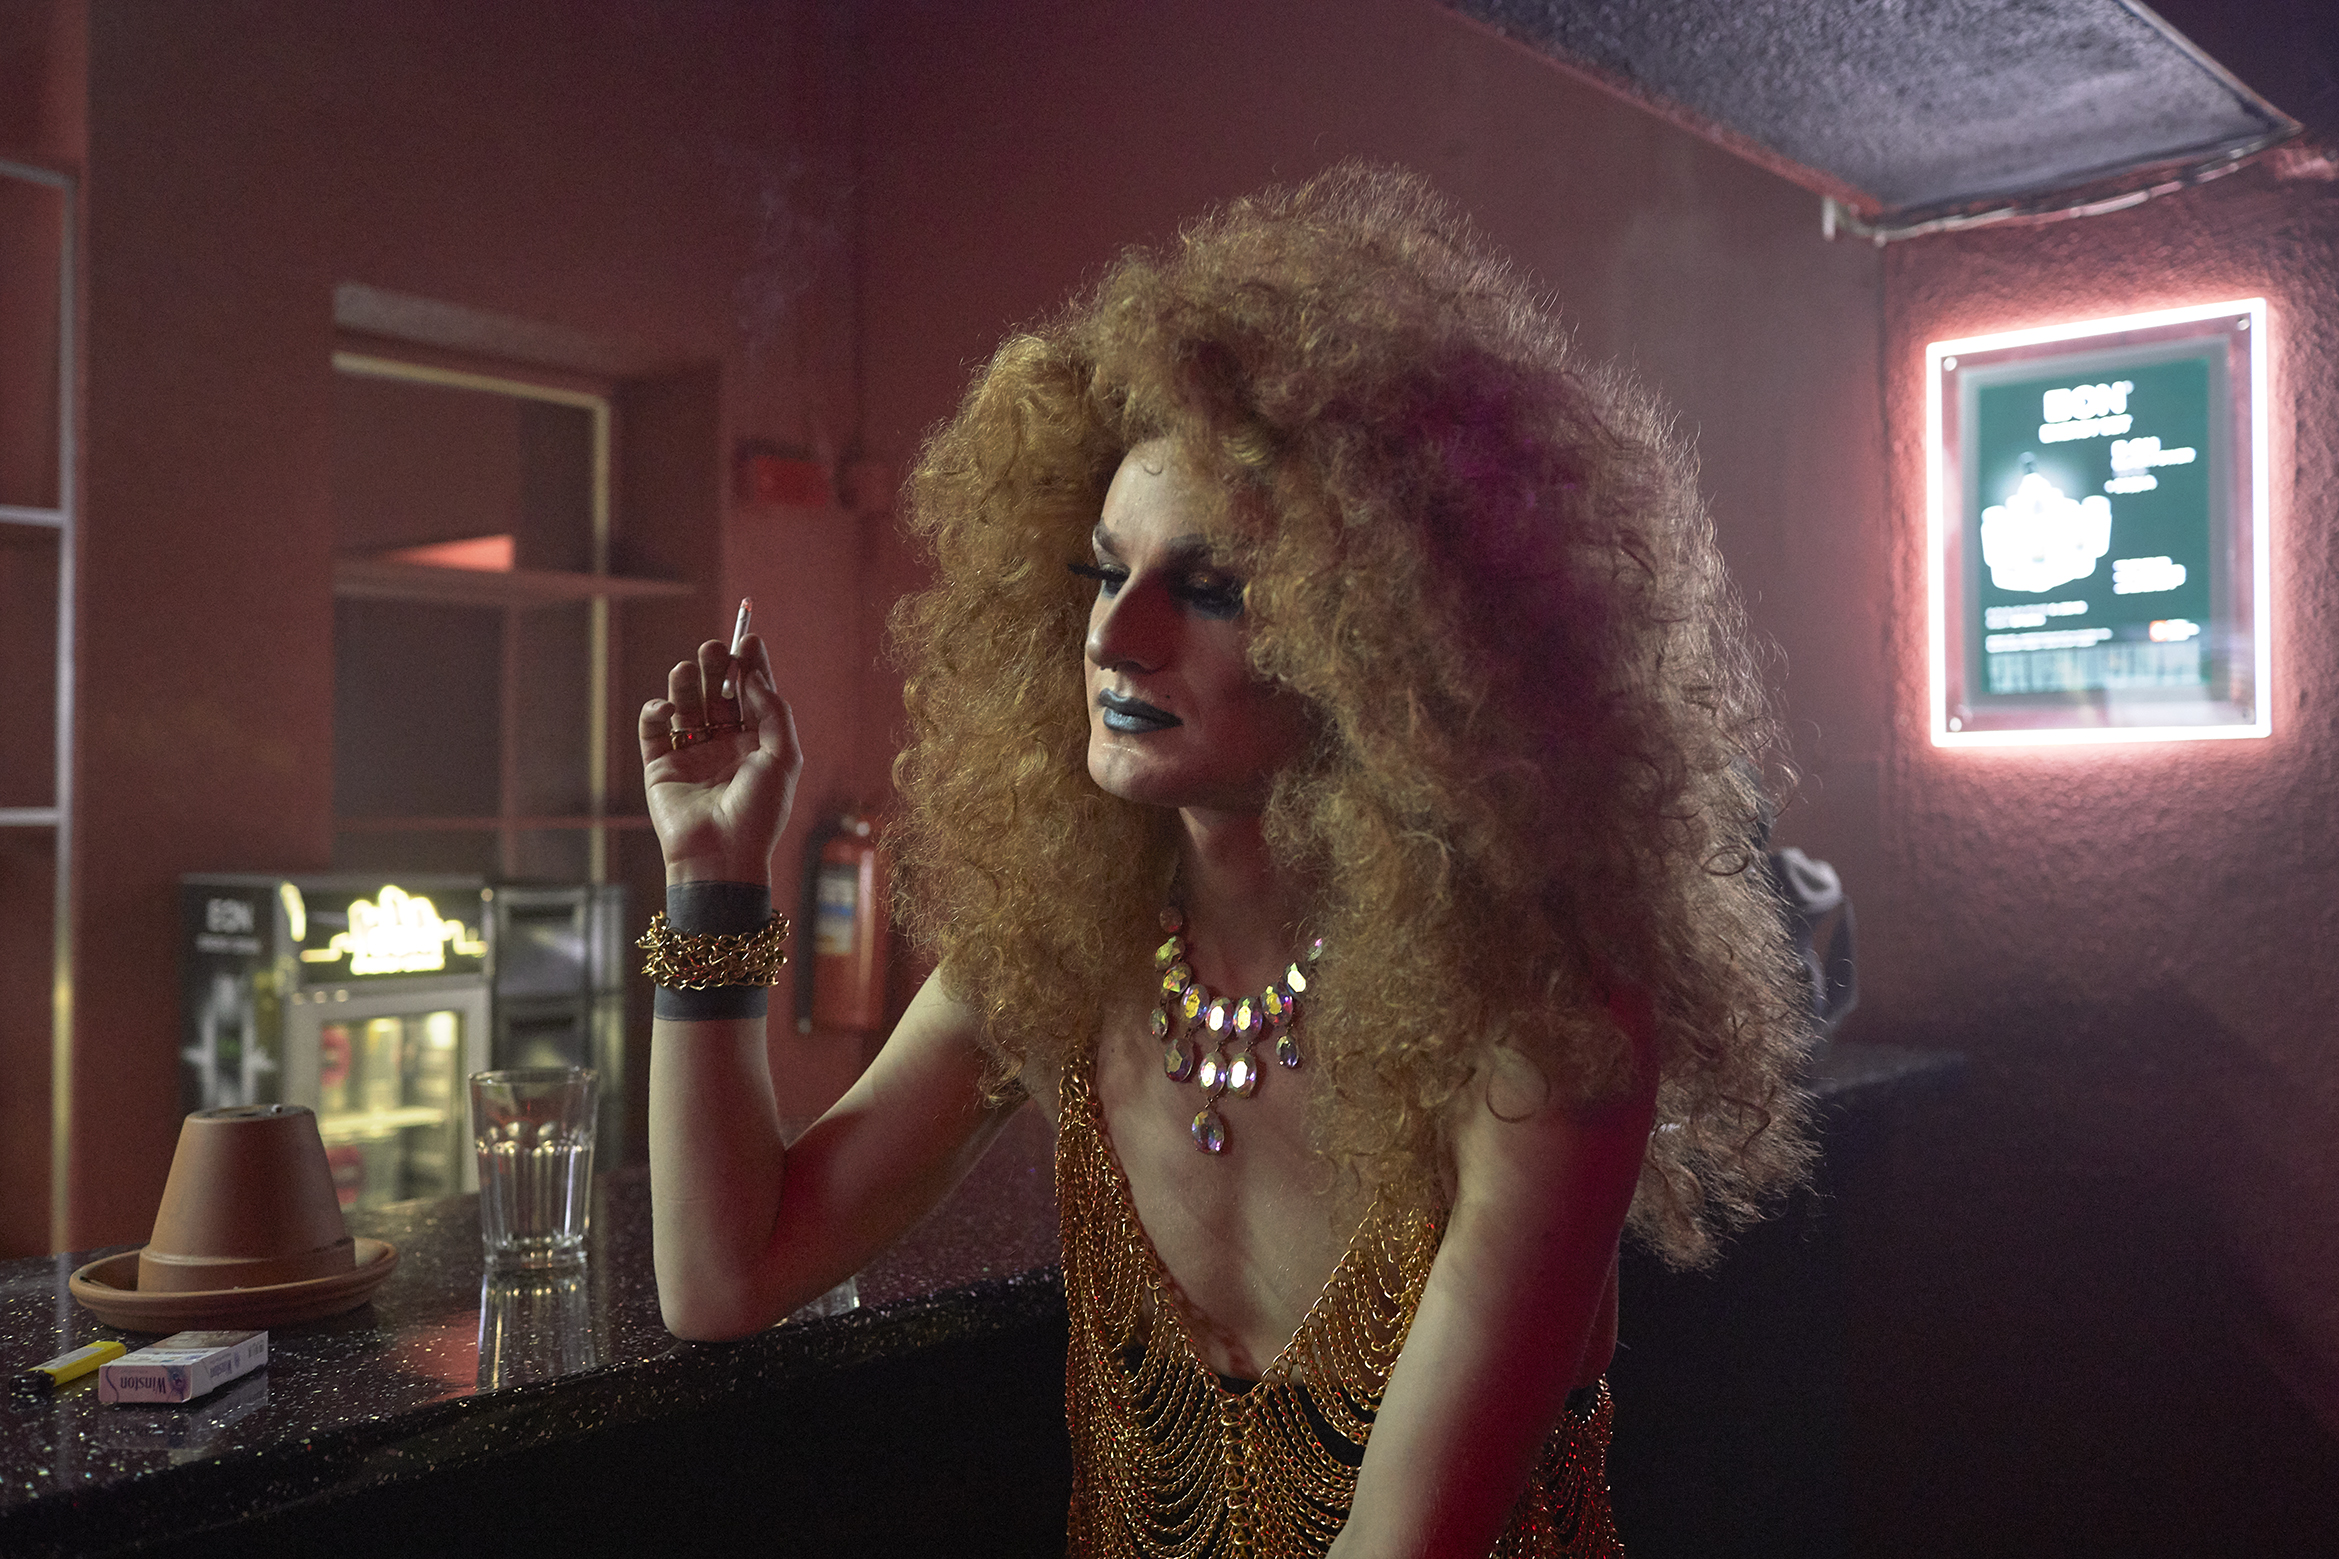 """Russia, Saint Petersburg, 30/05/2018. Miss Tekila smokes in the gay club """"Central Station SPB"""" after her performance. Alexandr Govorukhin (30) from Montschegorsk has lived in Saint Petersburg for 12 years already. He is a travesti actor (stage name is Miss Tekila) at the """"Central Station SPB"""" gay club, """"The Blue Oyster"""" gay bar and a makeup artist. Alexandr is openly gay."""